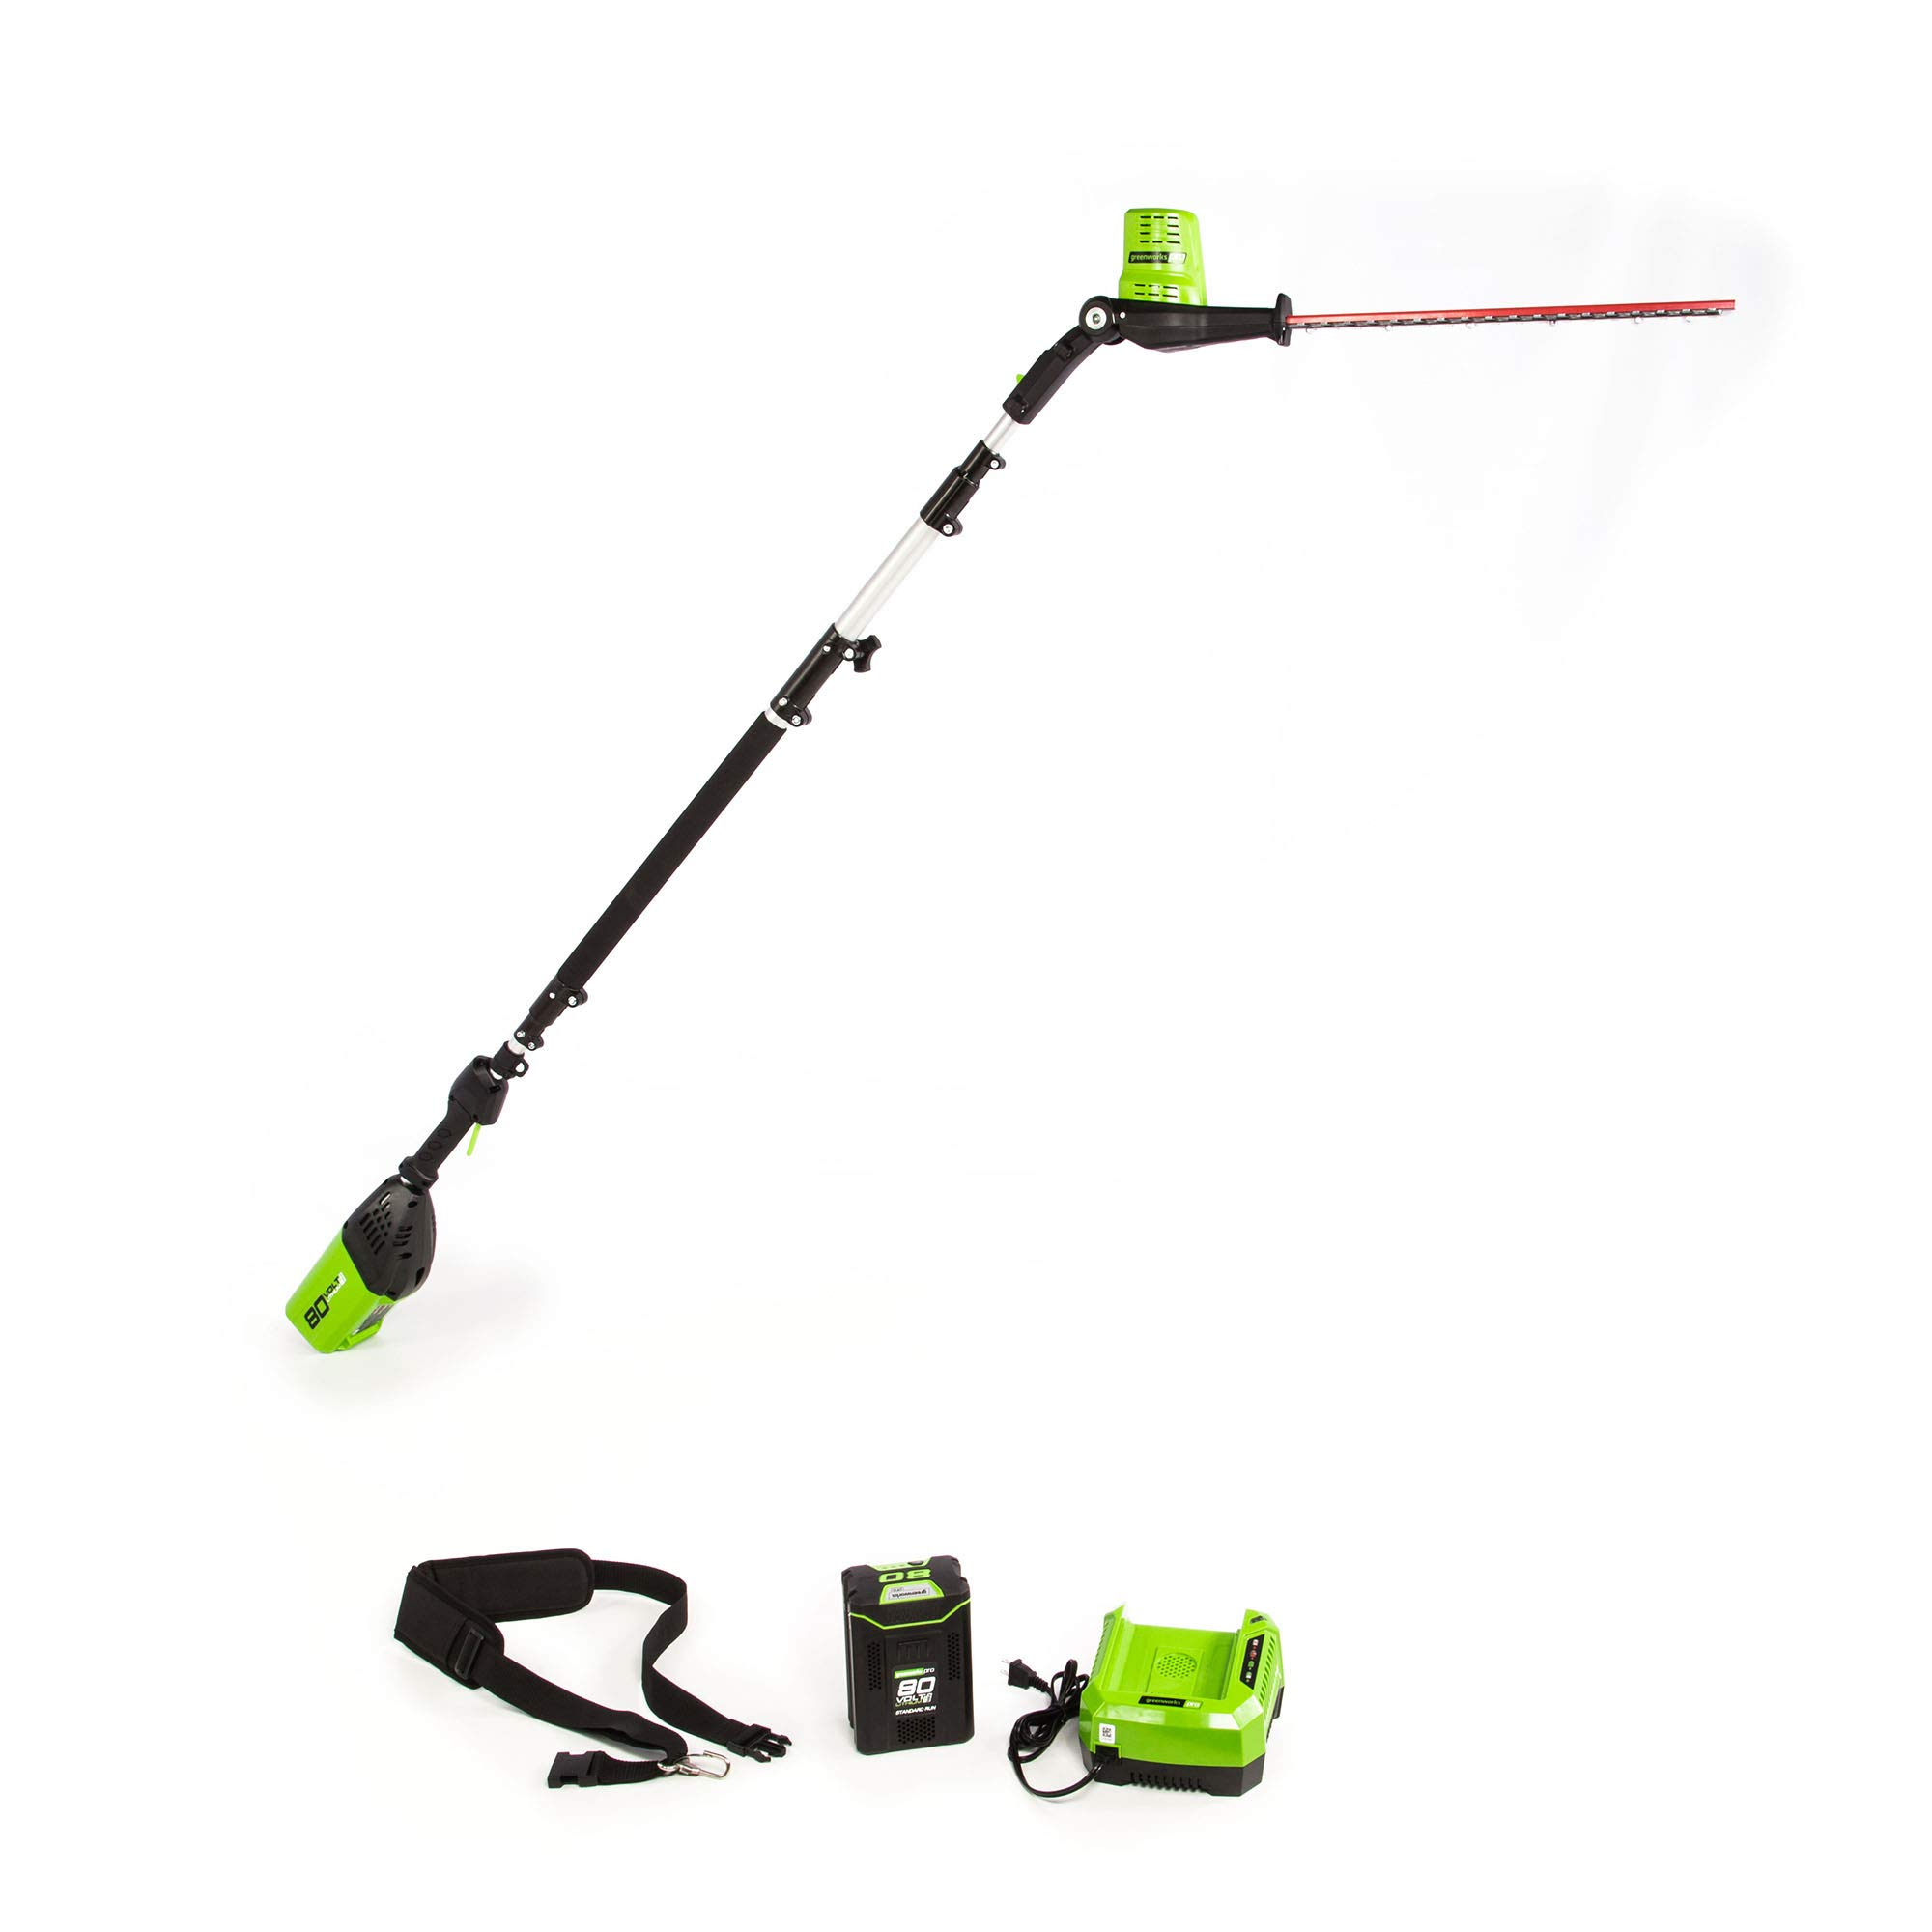 Greenworks 20-Inch 80V Cordless Pole Hedge Trimmer, 2.0Ah Battery and Charger Included PH80B210